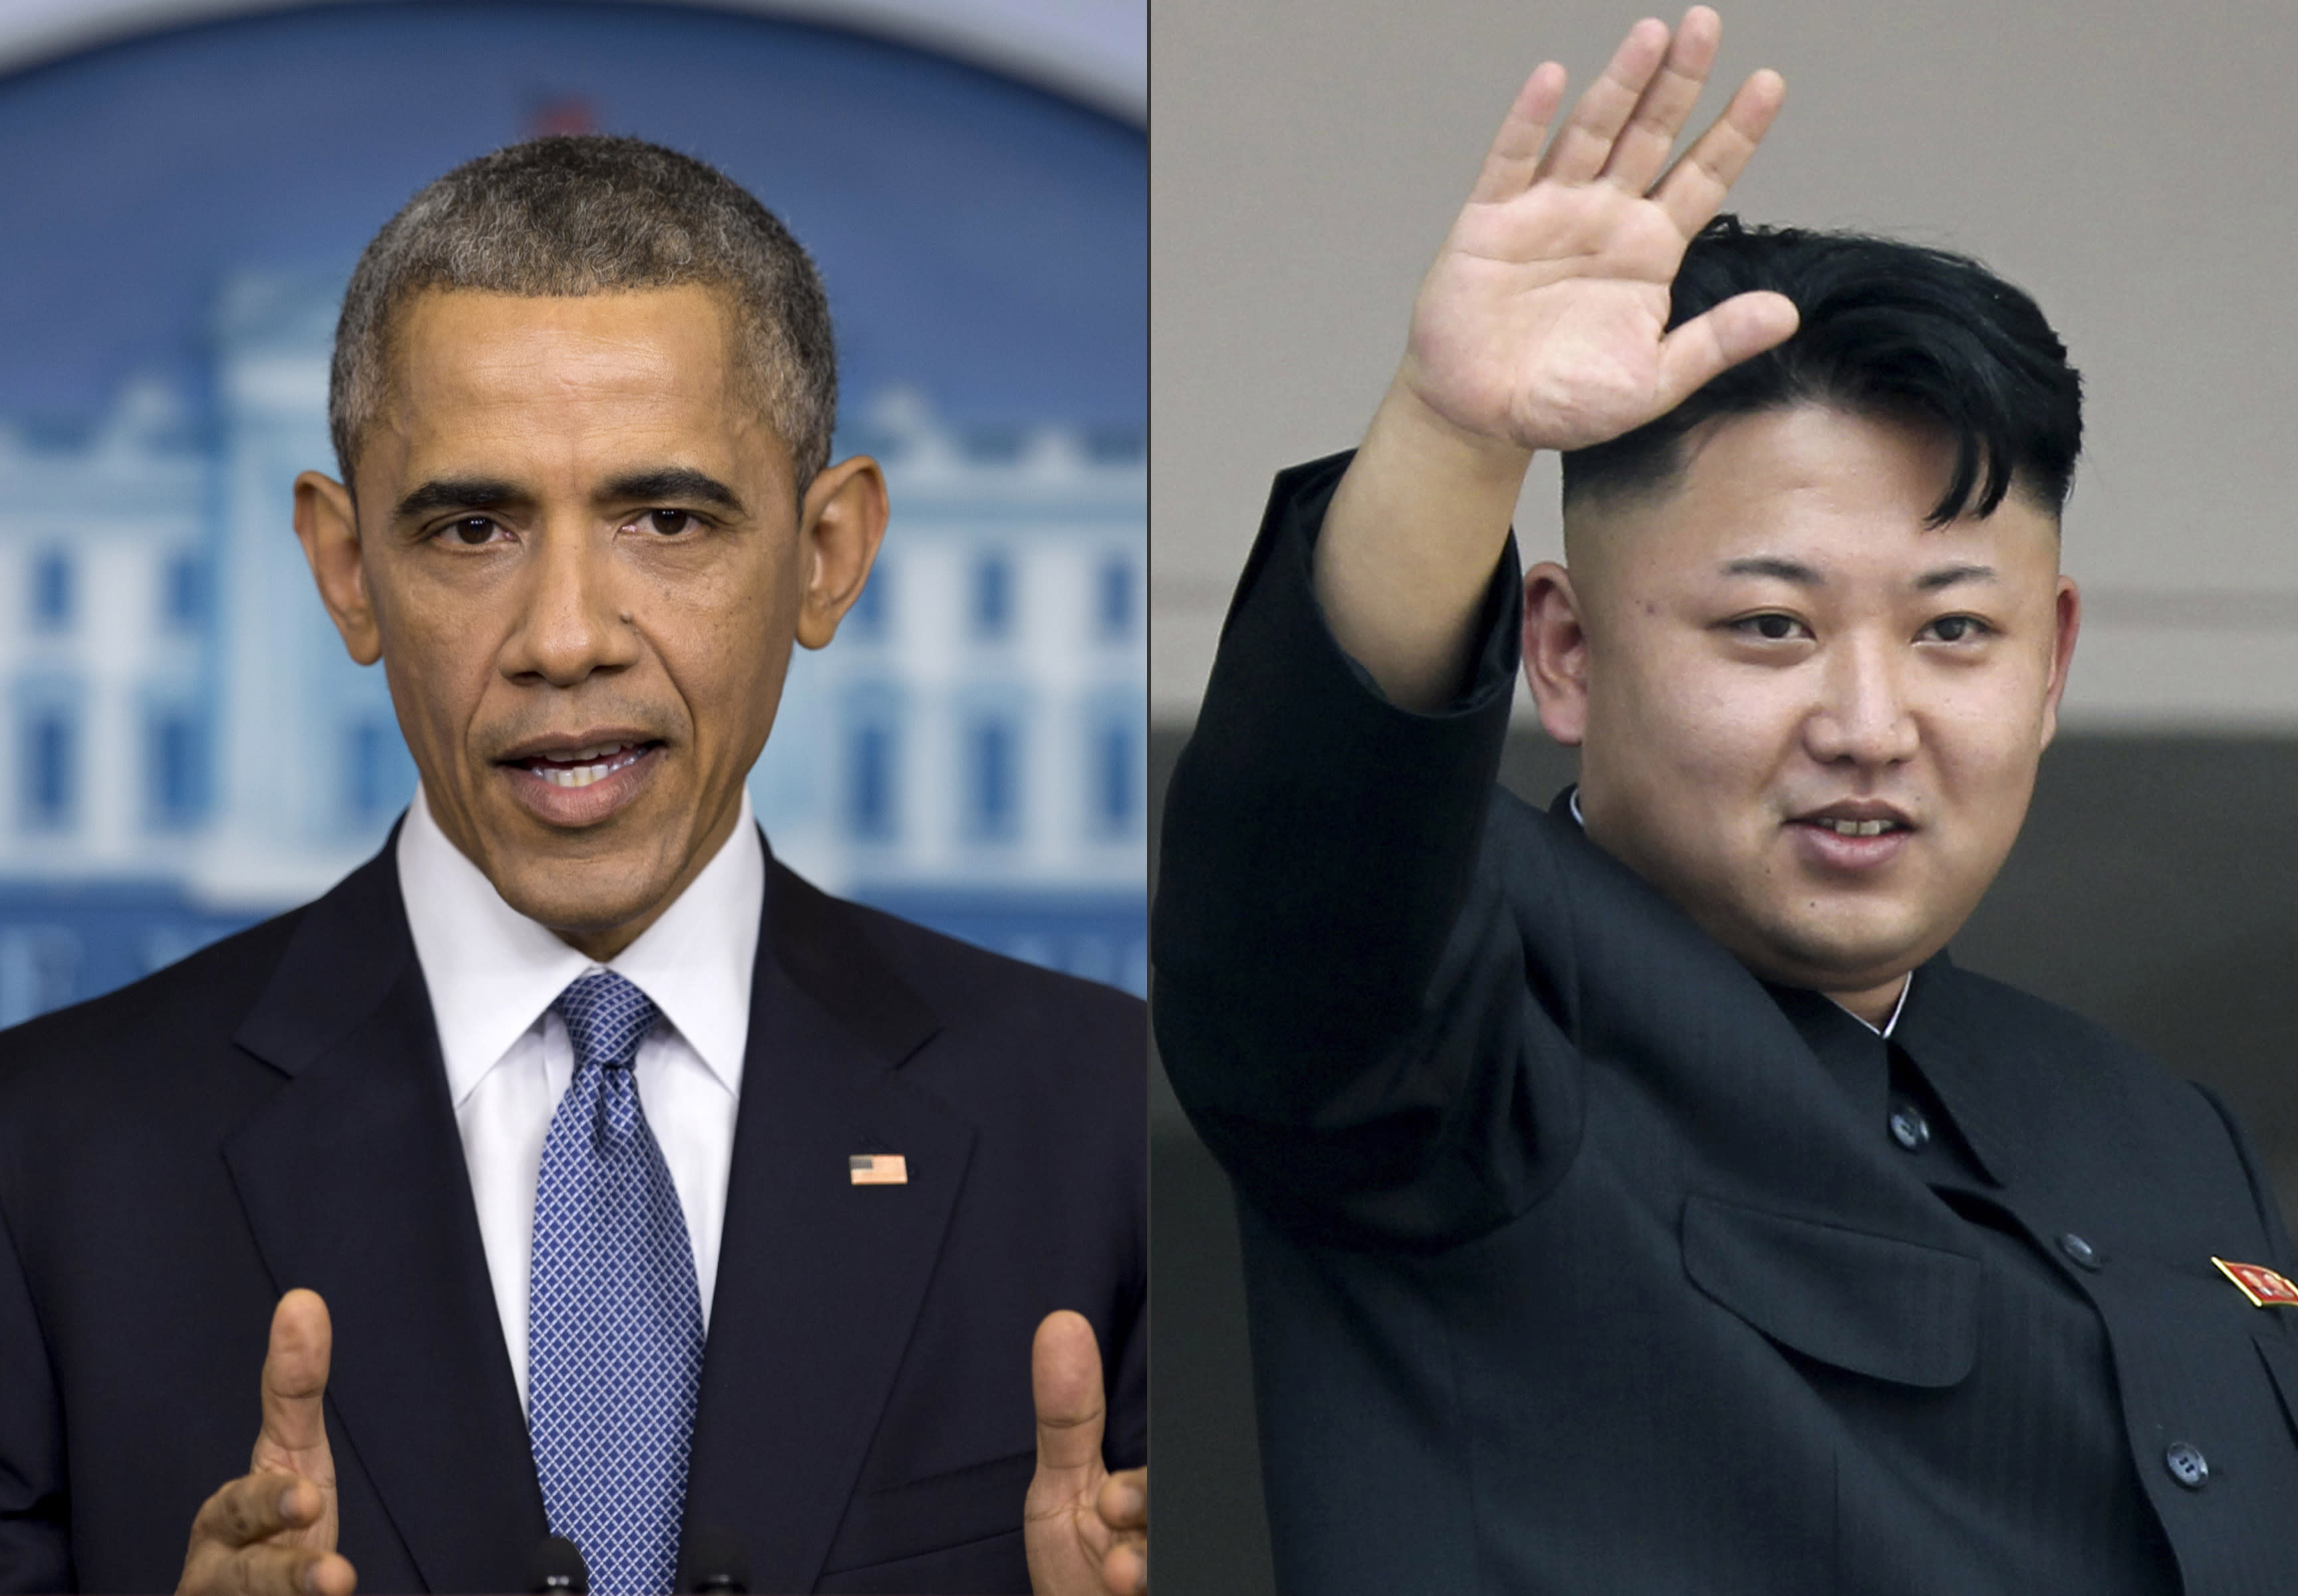 N. Korea uses racial slur against Obama over hack